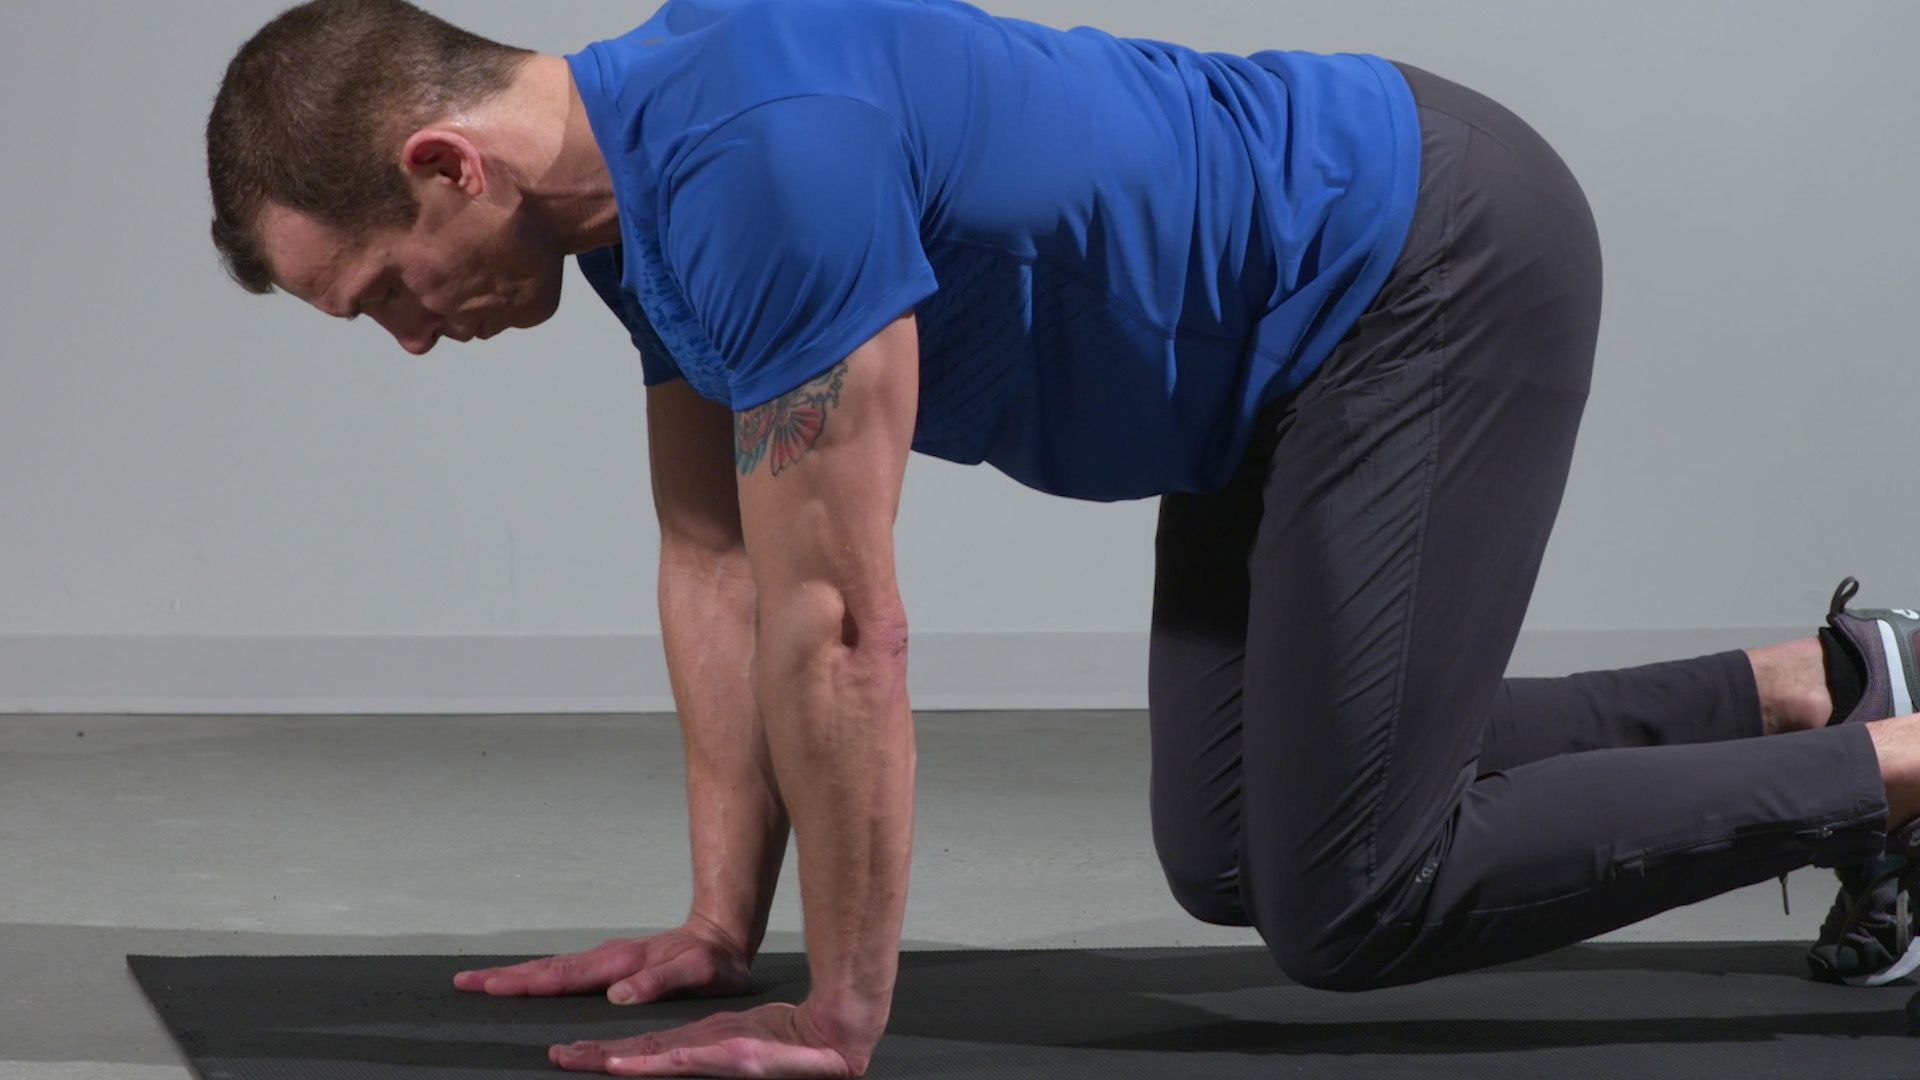 Chisel Your Abs in Just 20 Minutes with This Killer Core Circuit